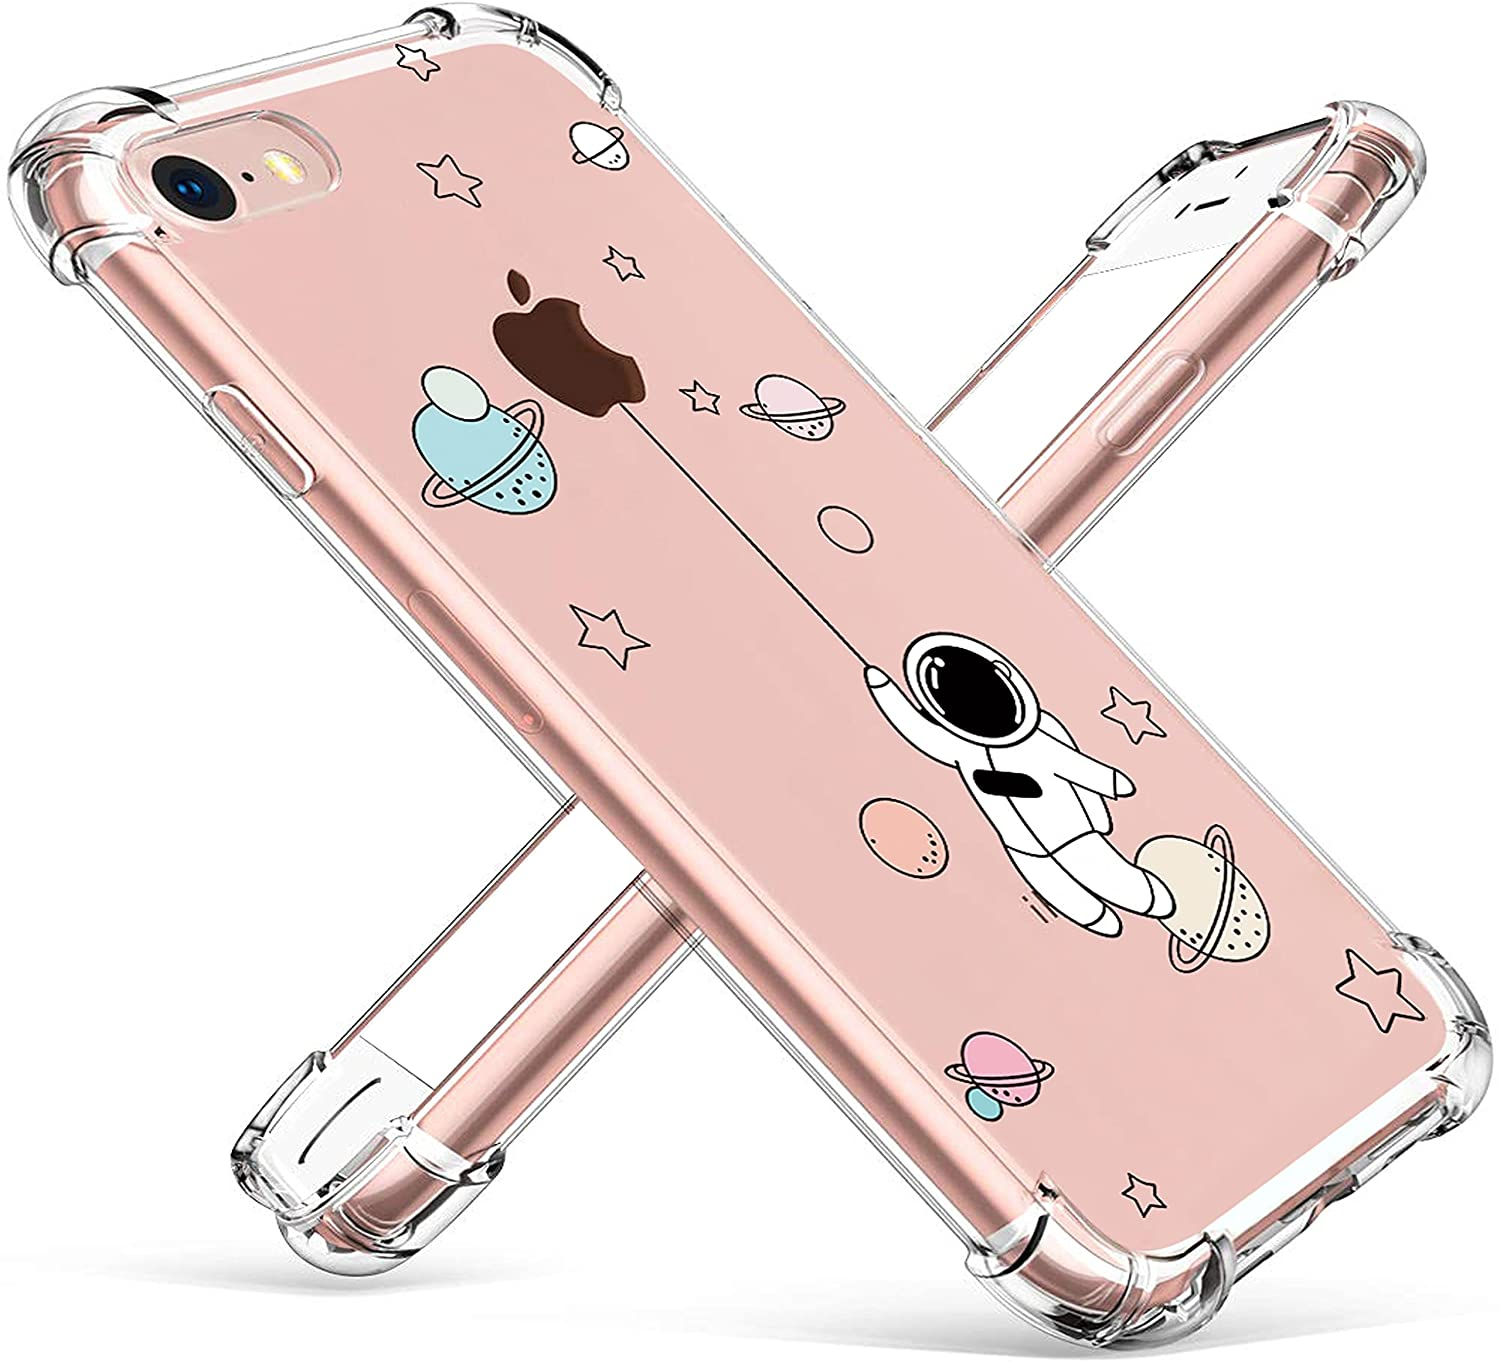 oqpa for iPhone 6 Plus/6S Plus Case Cartoon Character Funny Cute Fun TPU Design Cover for Girls Kids Boys Teen, Fashion Cool Unique Aesthetic Planet Astronaut Cases (for iPhone 6 Plus/6S Plus 5.5